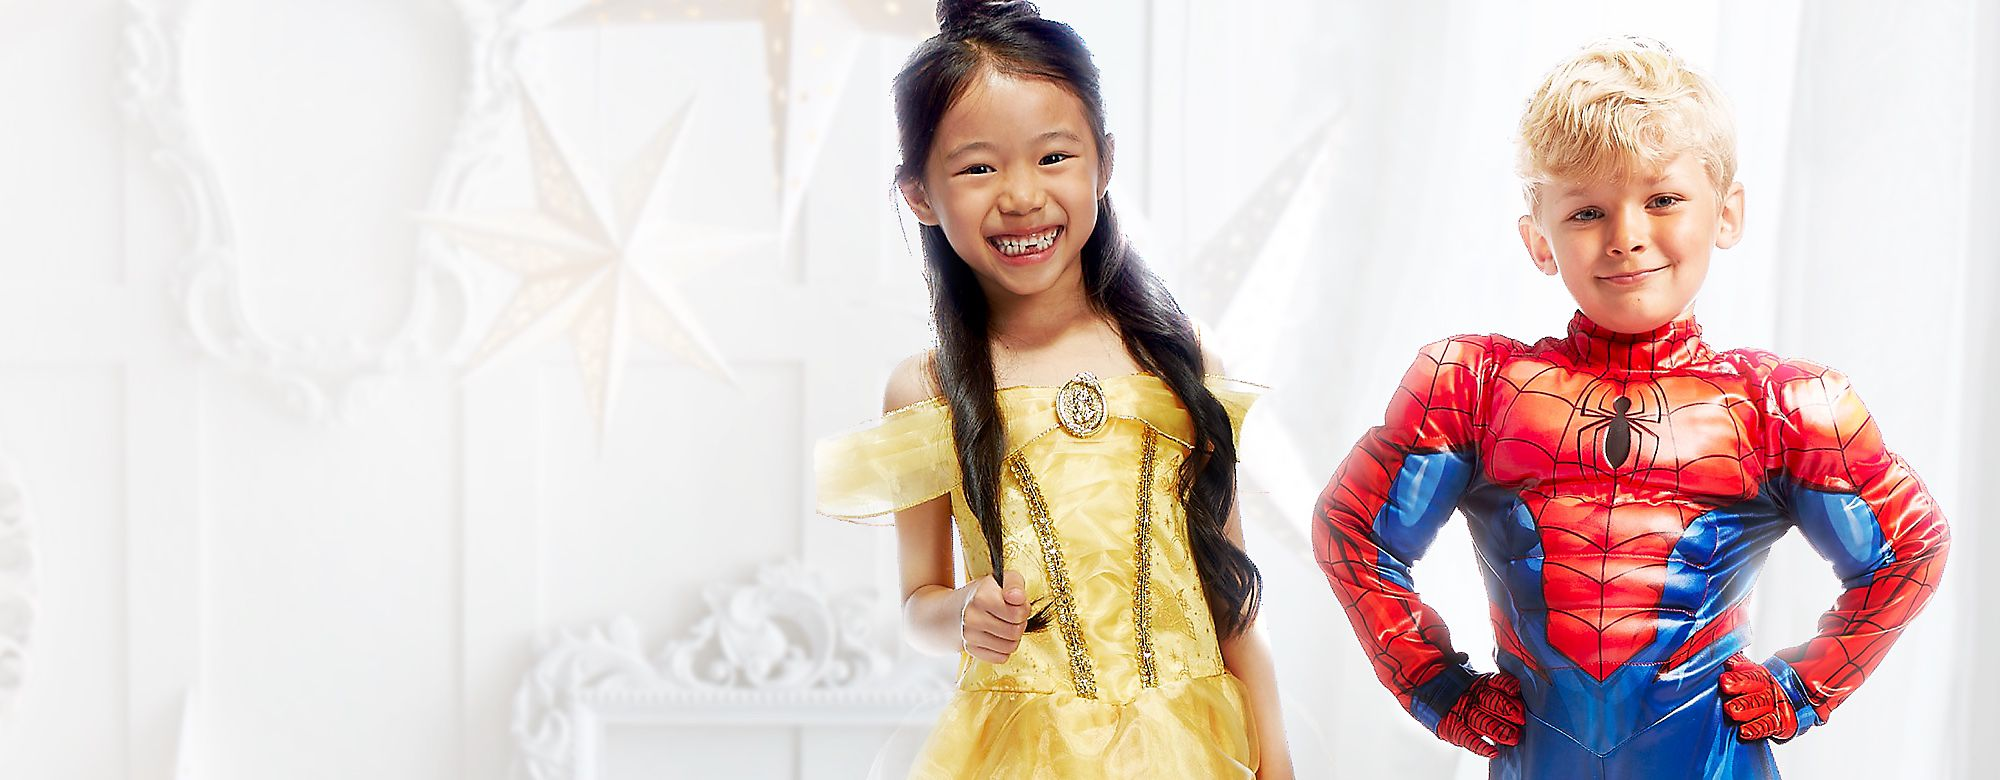 Fancy Dress Discover a magical range of official Disney, Marvel and Star Wars fancy dress costumes for the whole family. Shop an amazing collection for babies, kids and adults featuring favourites like Disney Princesses, Spider-Man, Stormtroopers and many more. DISCOVER MORE